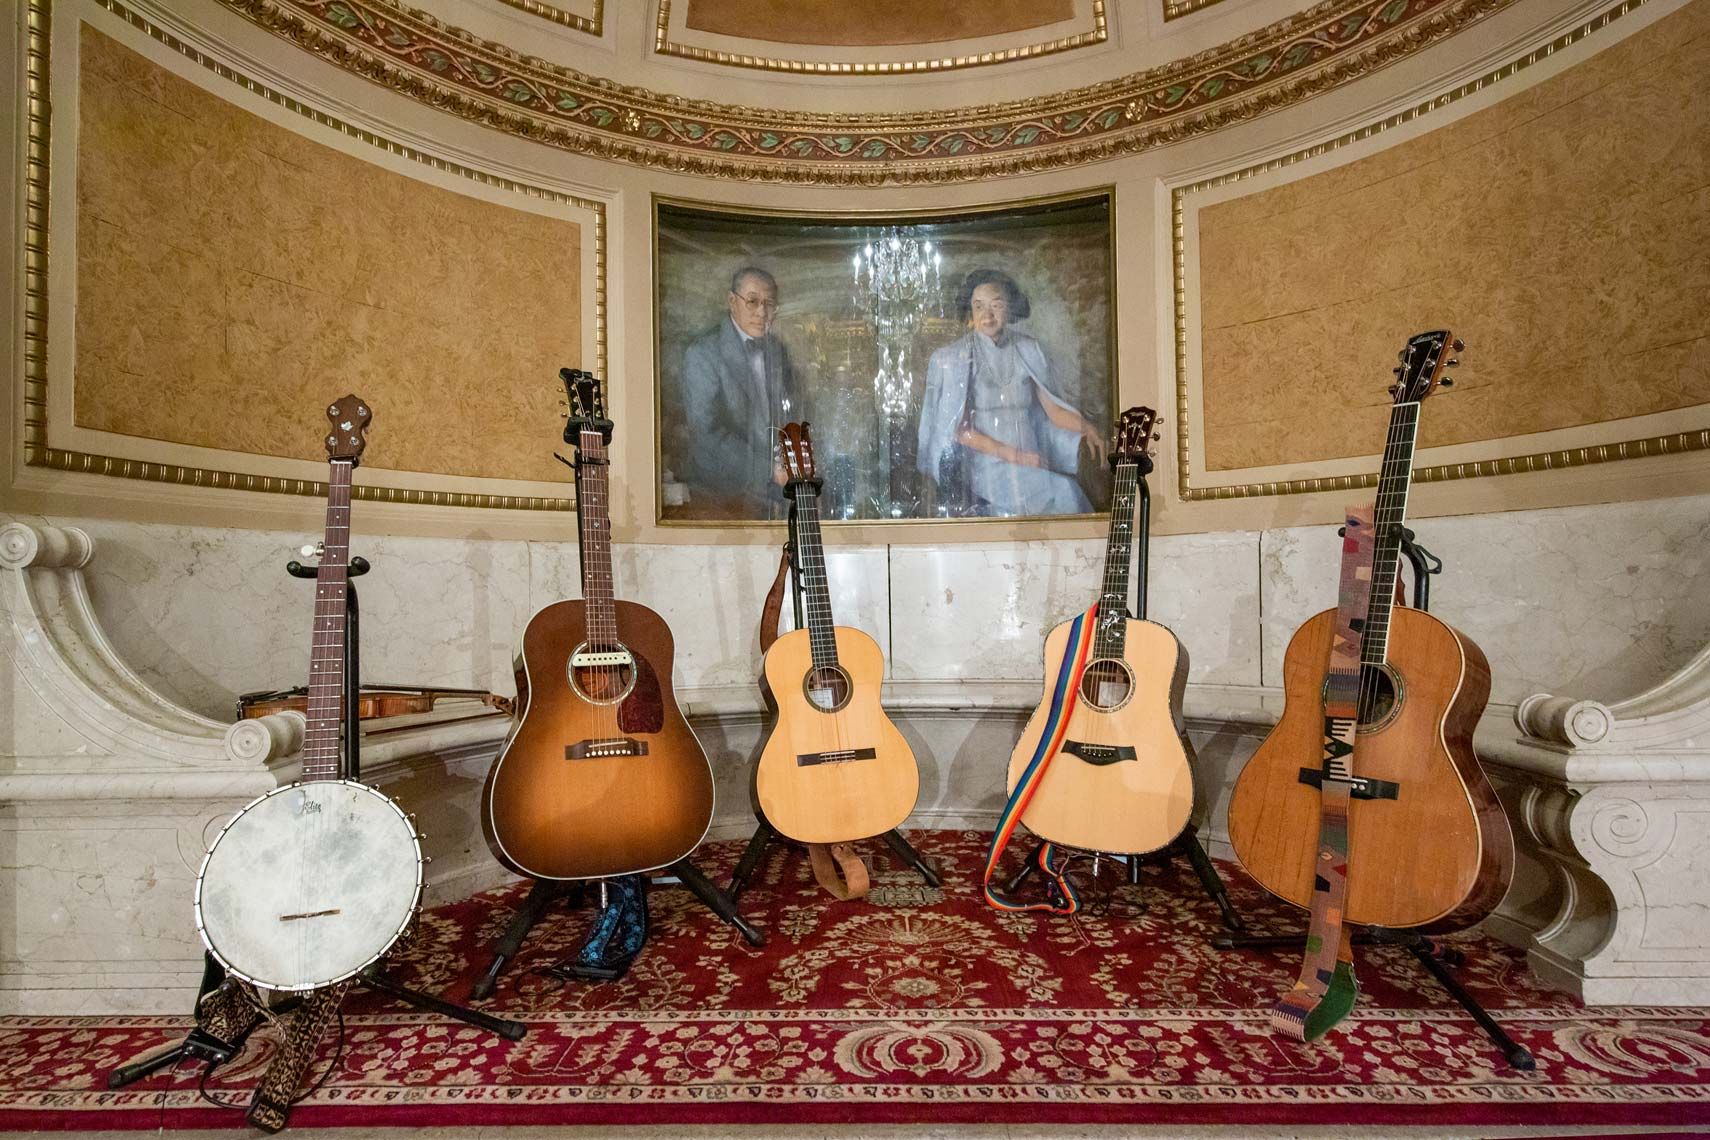 Five guitars and a banjo at the Wang Theater by David Fox Photographer